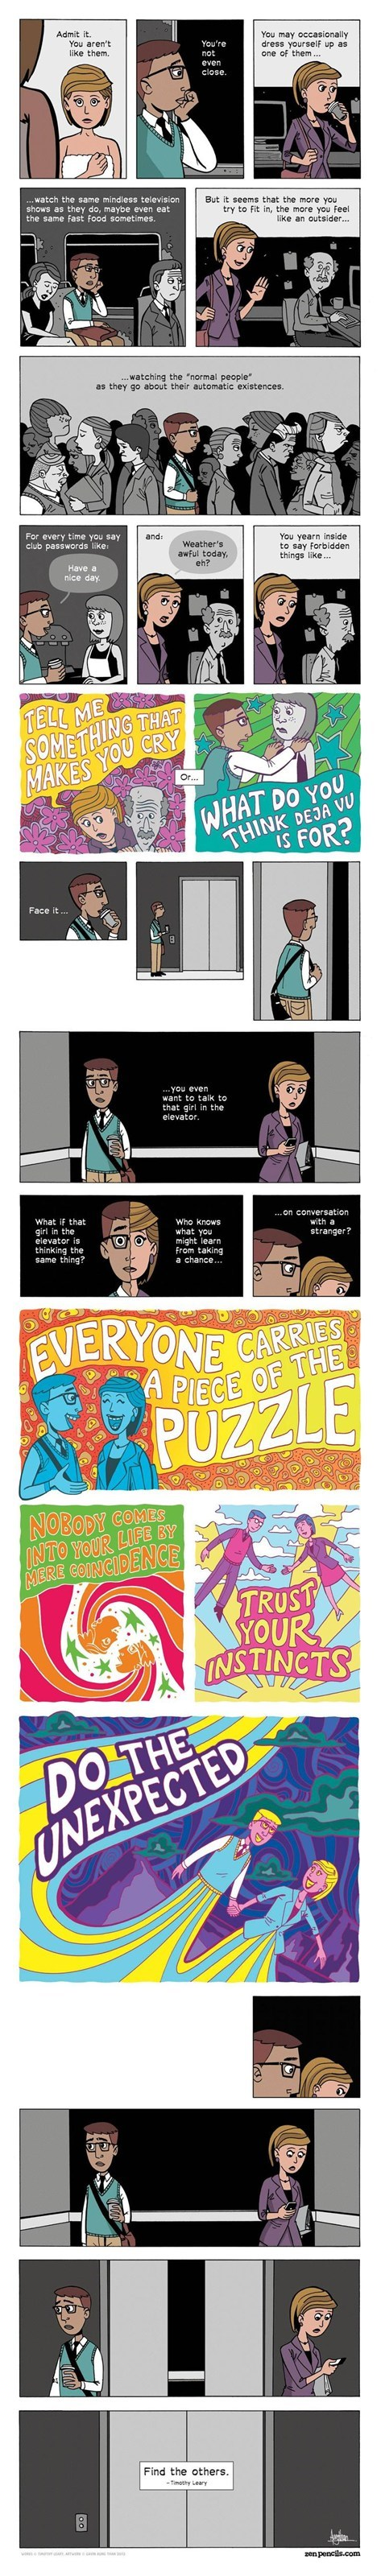 hello,comics,inspirational,zen pencils,dating fails,g rated